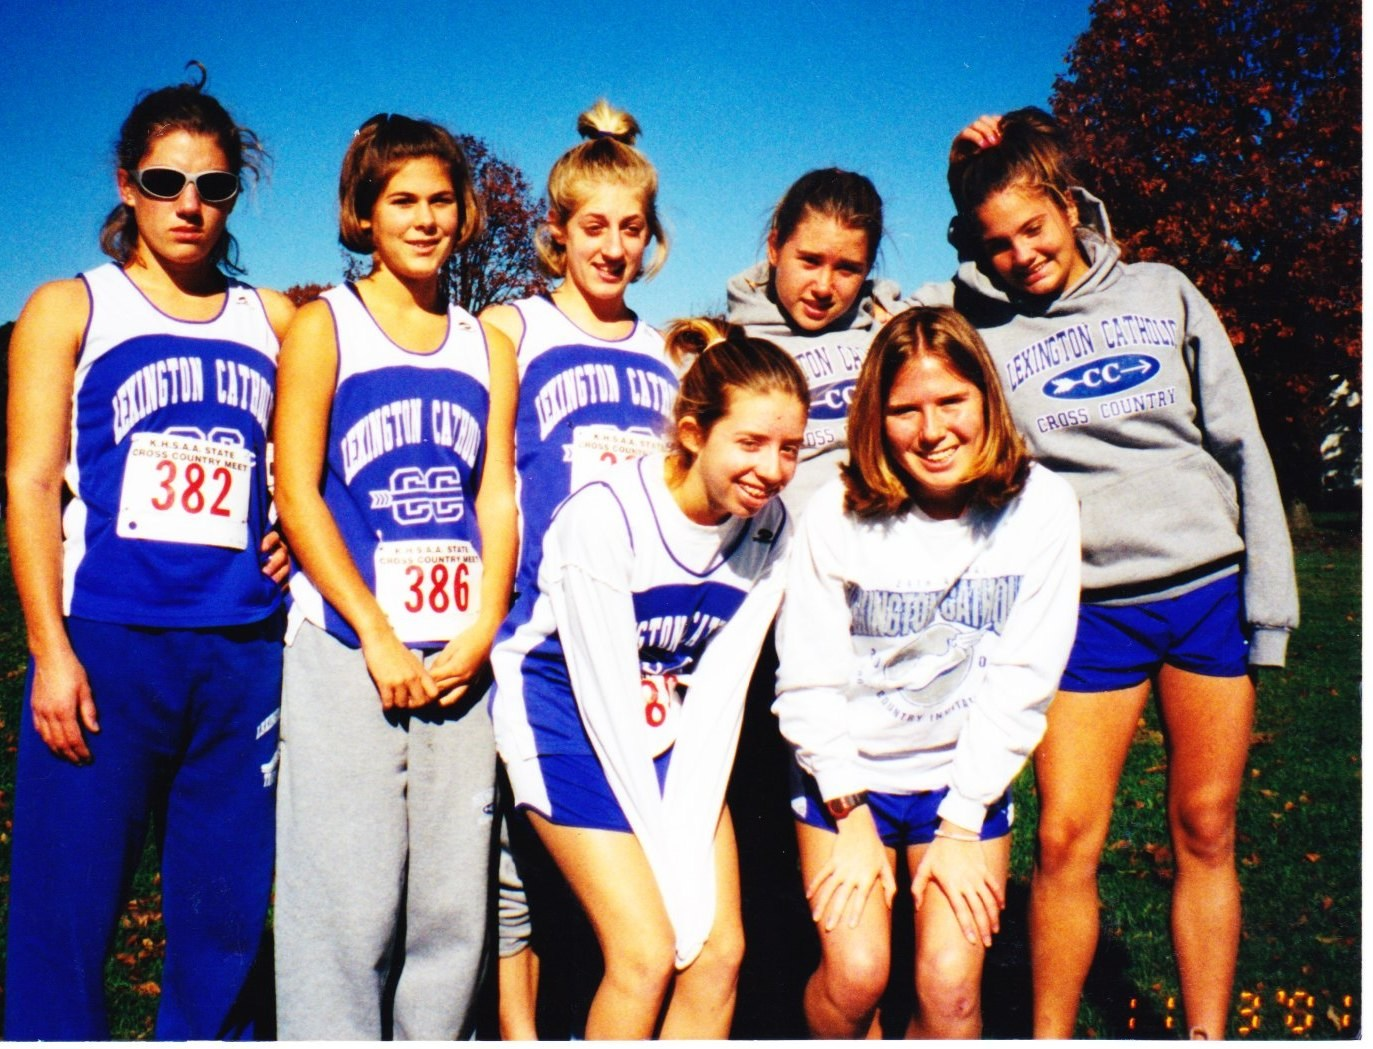 history in photos cross country lexington catholic high school 2001 state l to r lauren arnold caroline pike ashley arnold lucy barton lucie swain sarah morgan and mary megan sparks